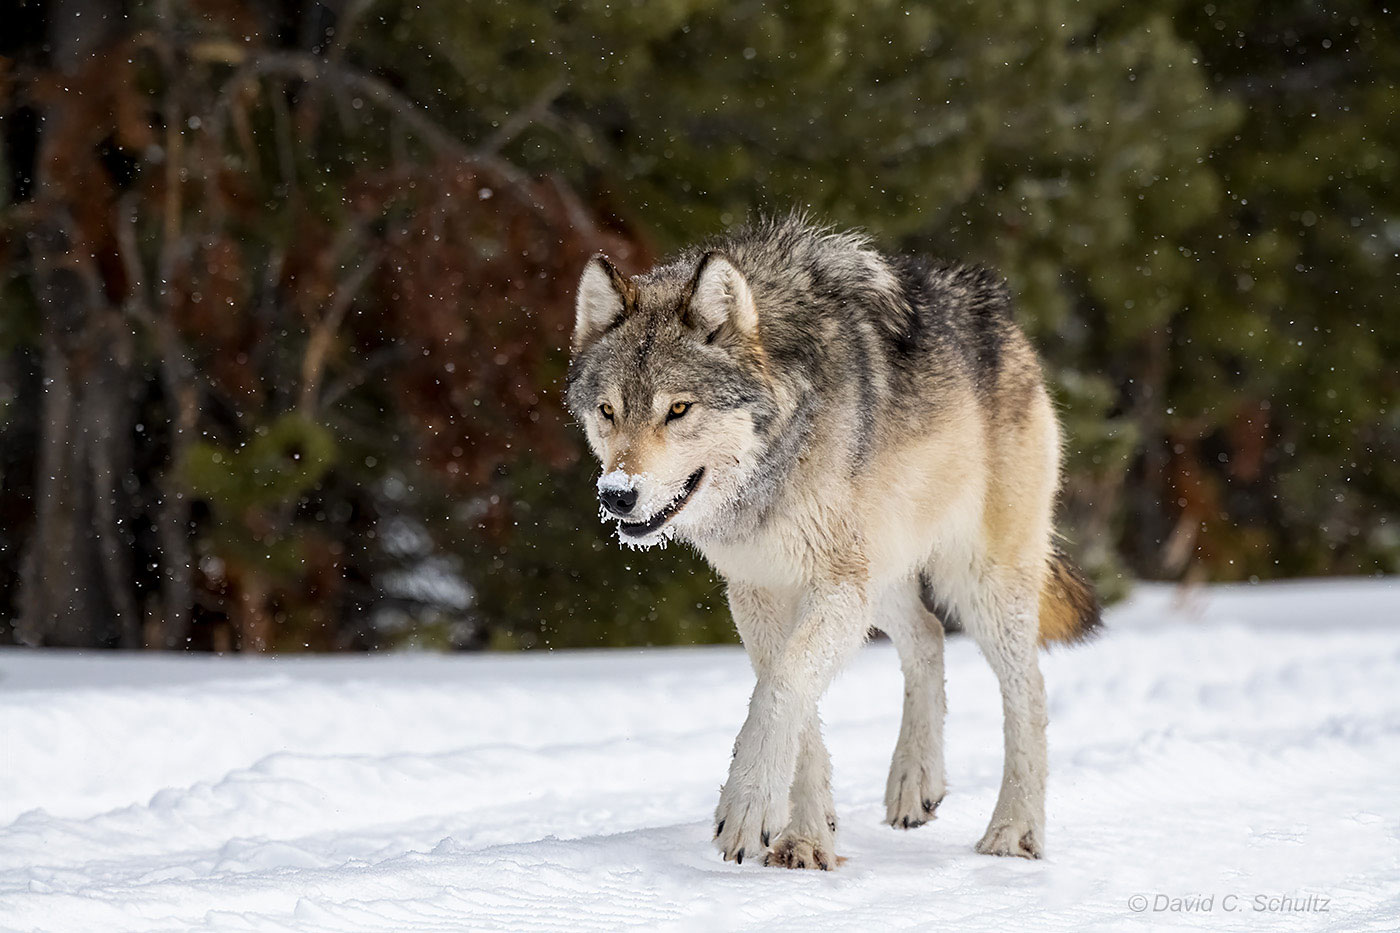 Wolf in Yellowstone National Park - Image #161-10871